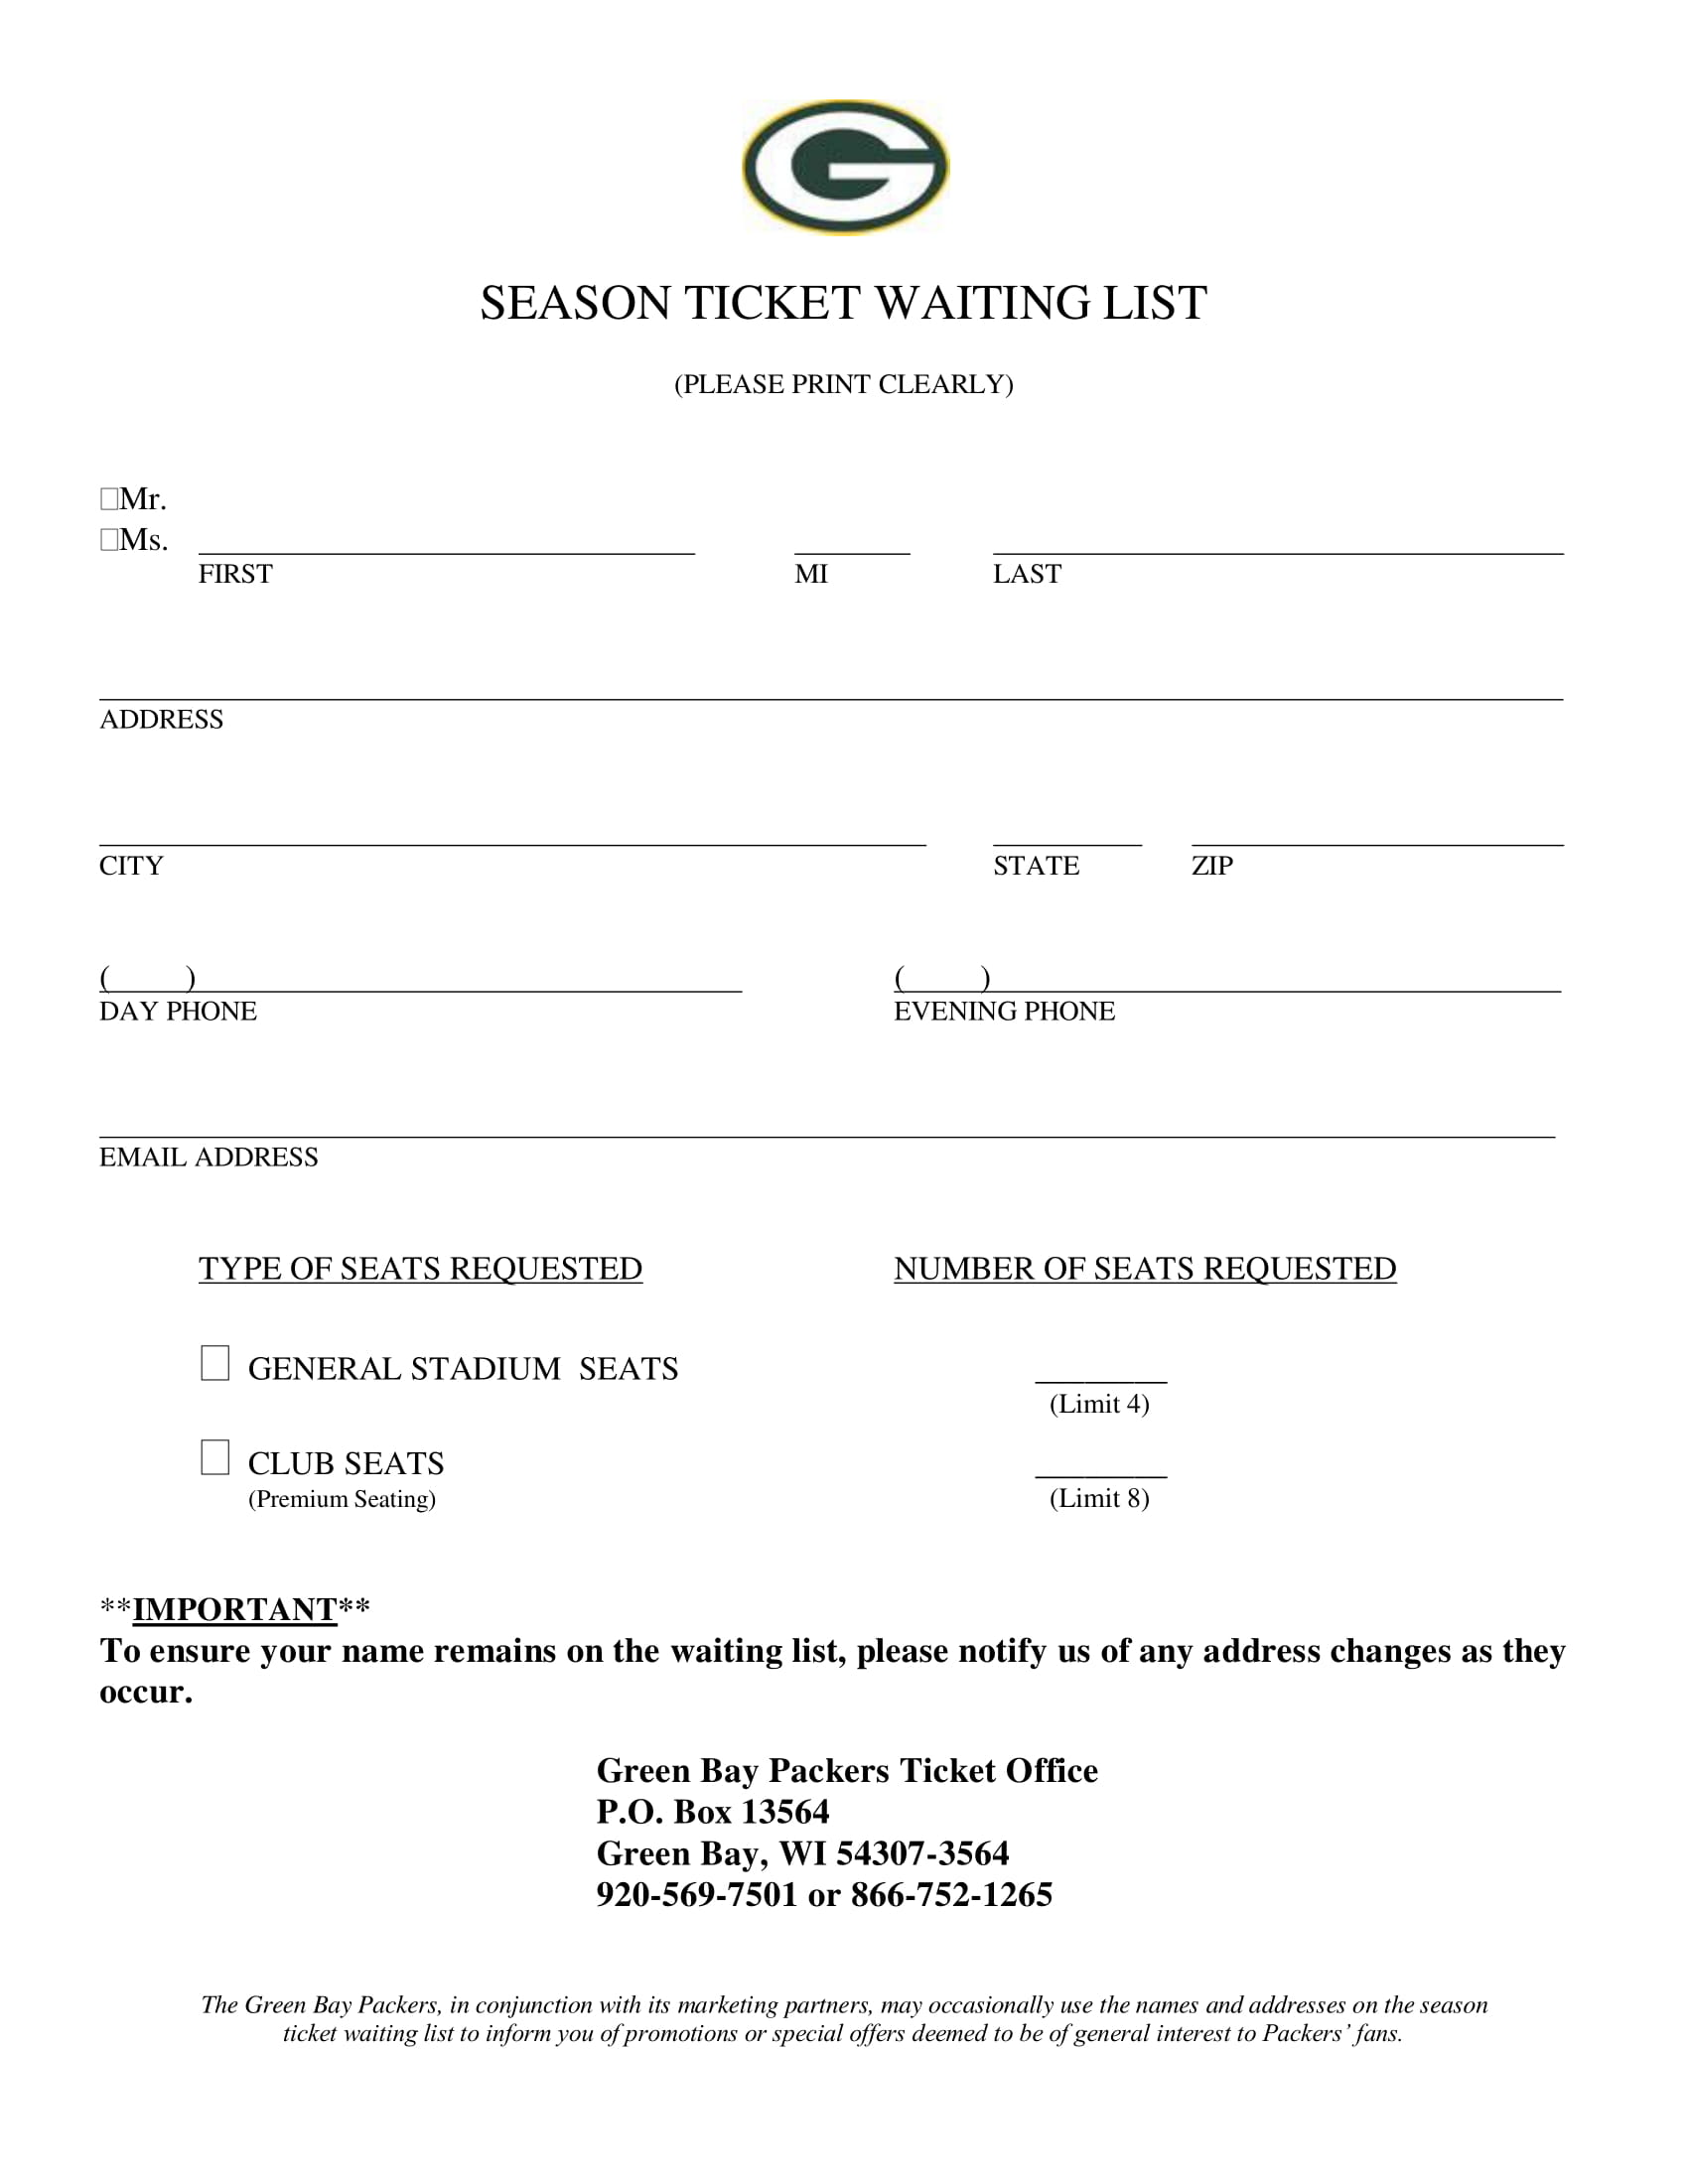 season ticket waitlist form 1